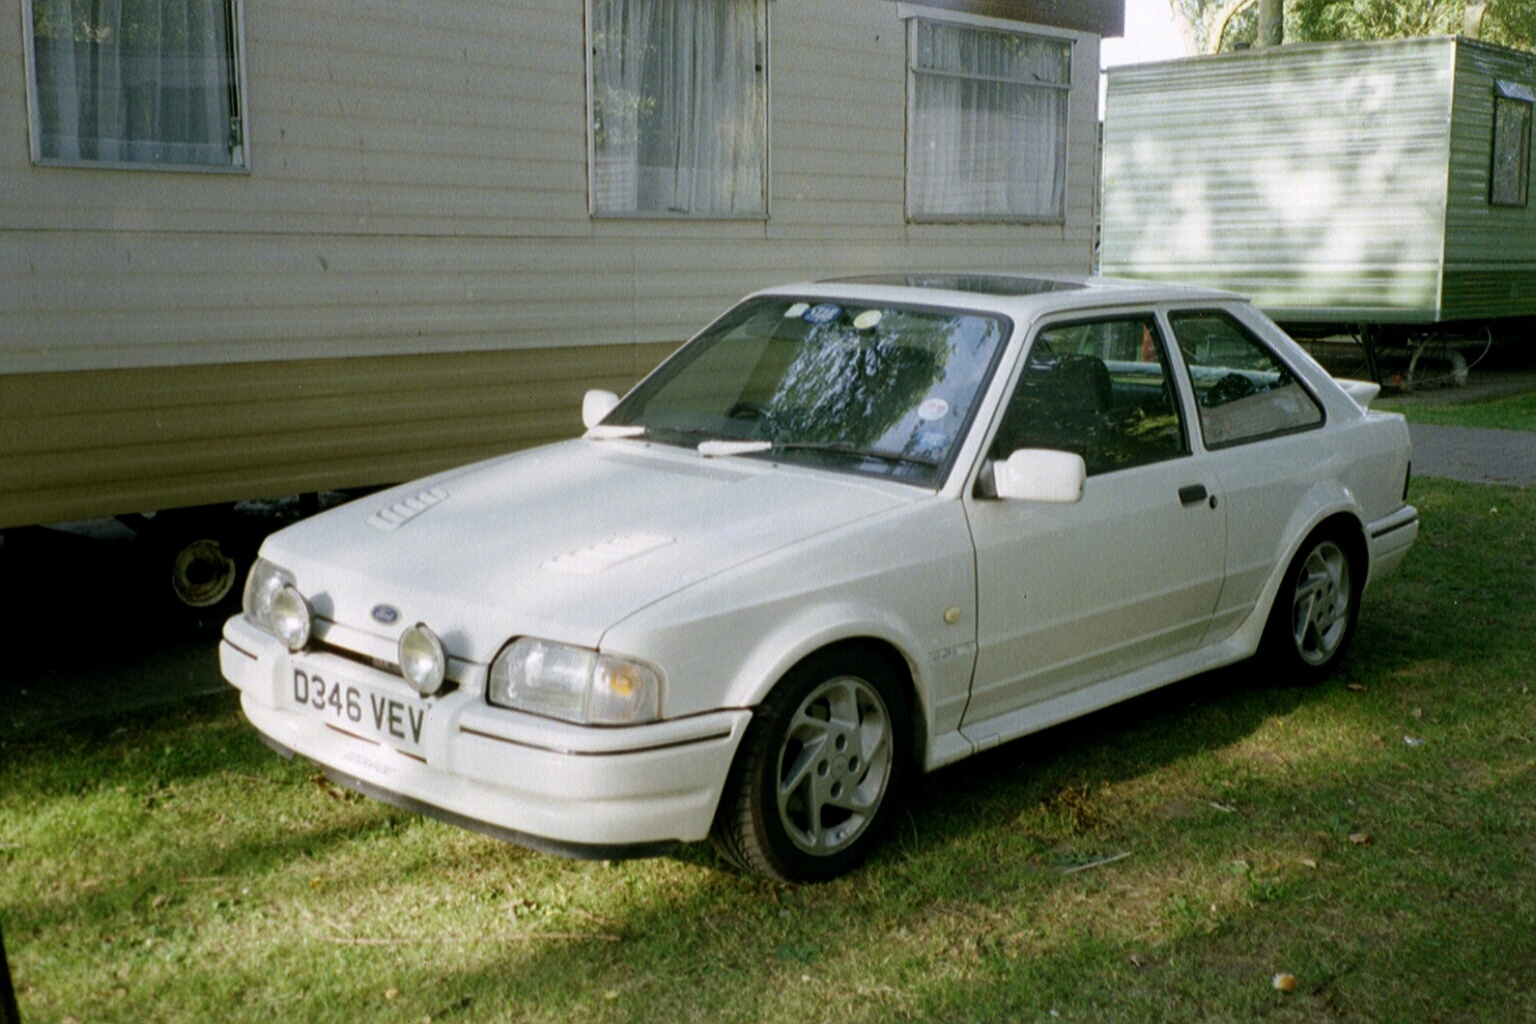 1987 Ford Escort, Ford Escort RS Turbo, exterior